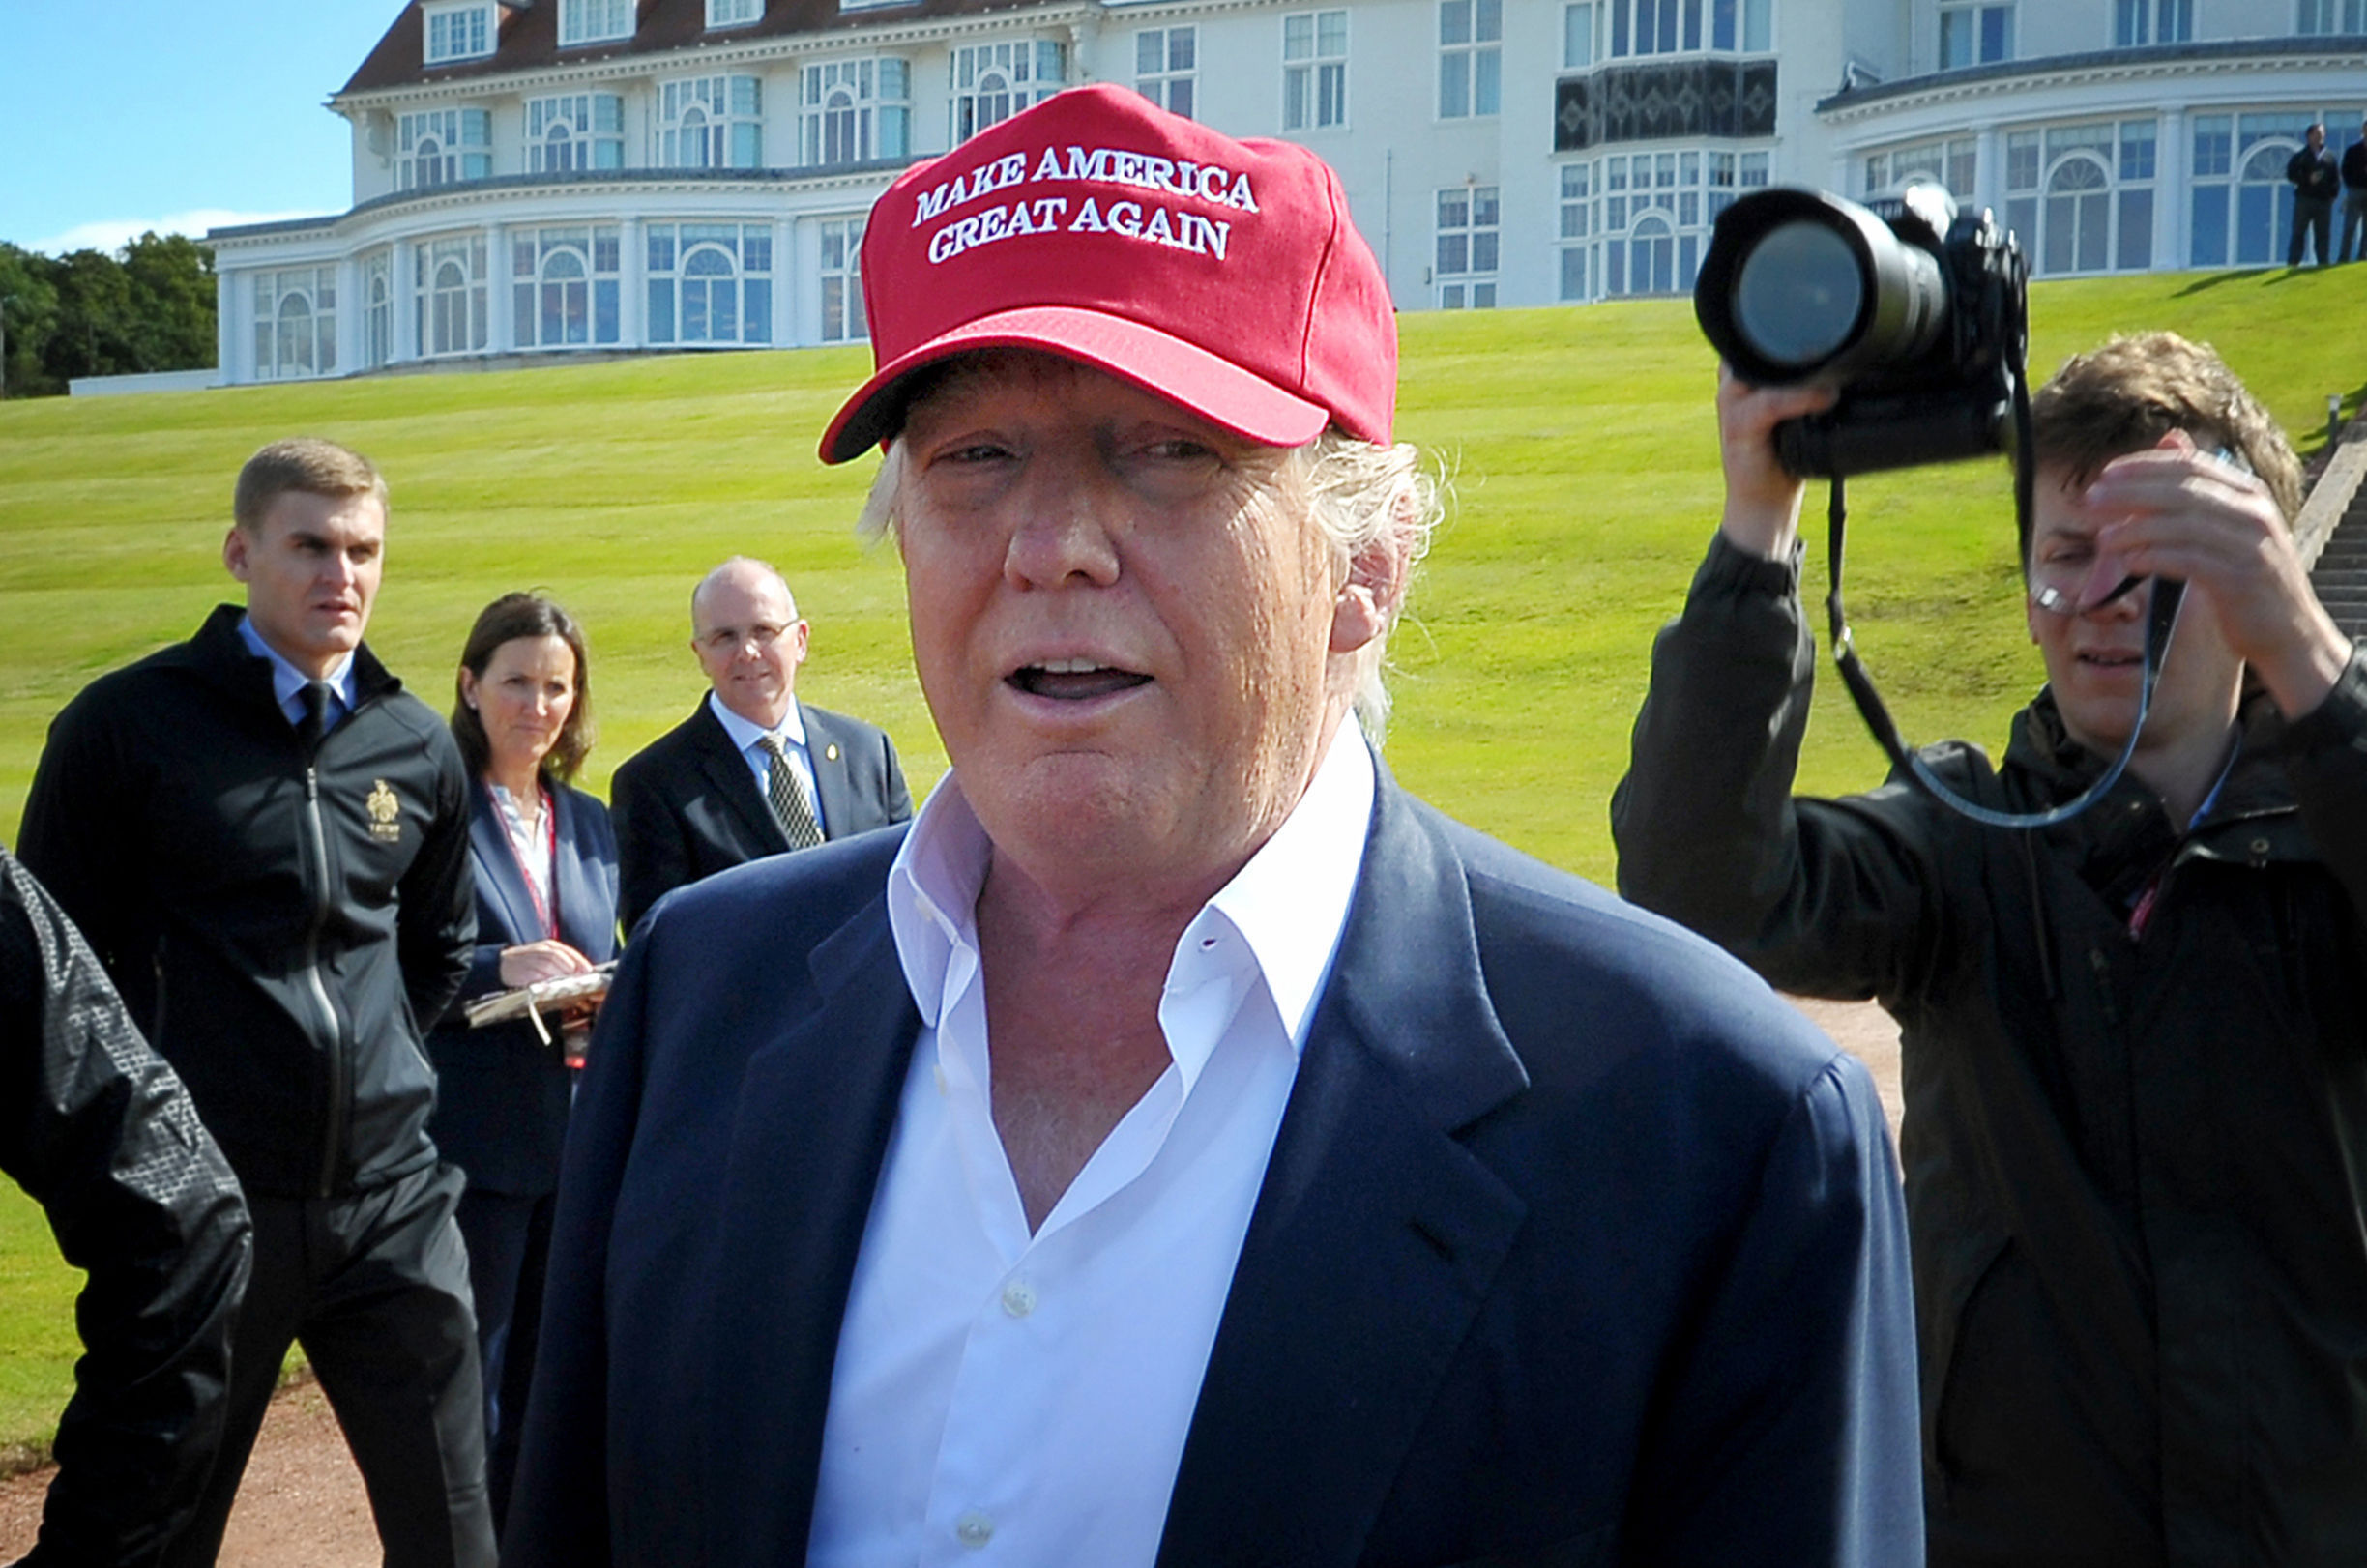 PA 	Donald Trump at Turnberry during the 2016 Presidential race